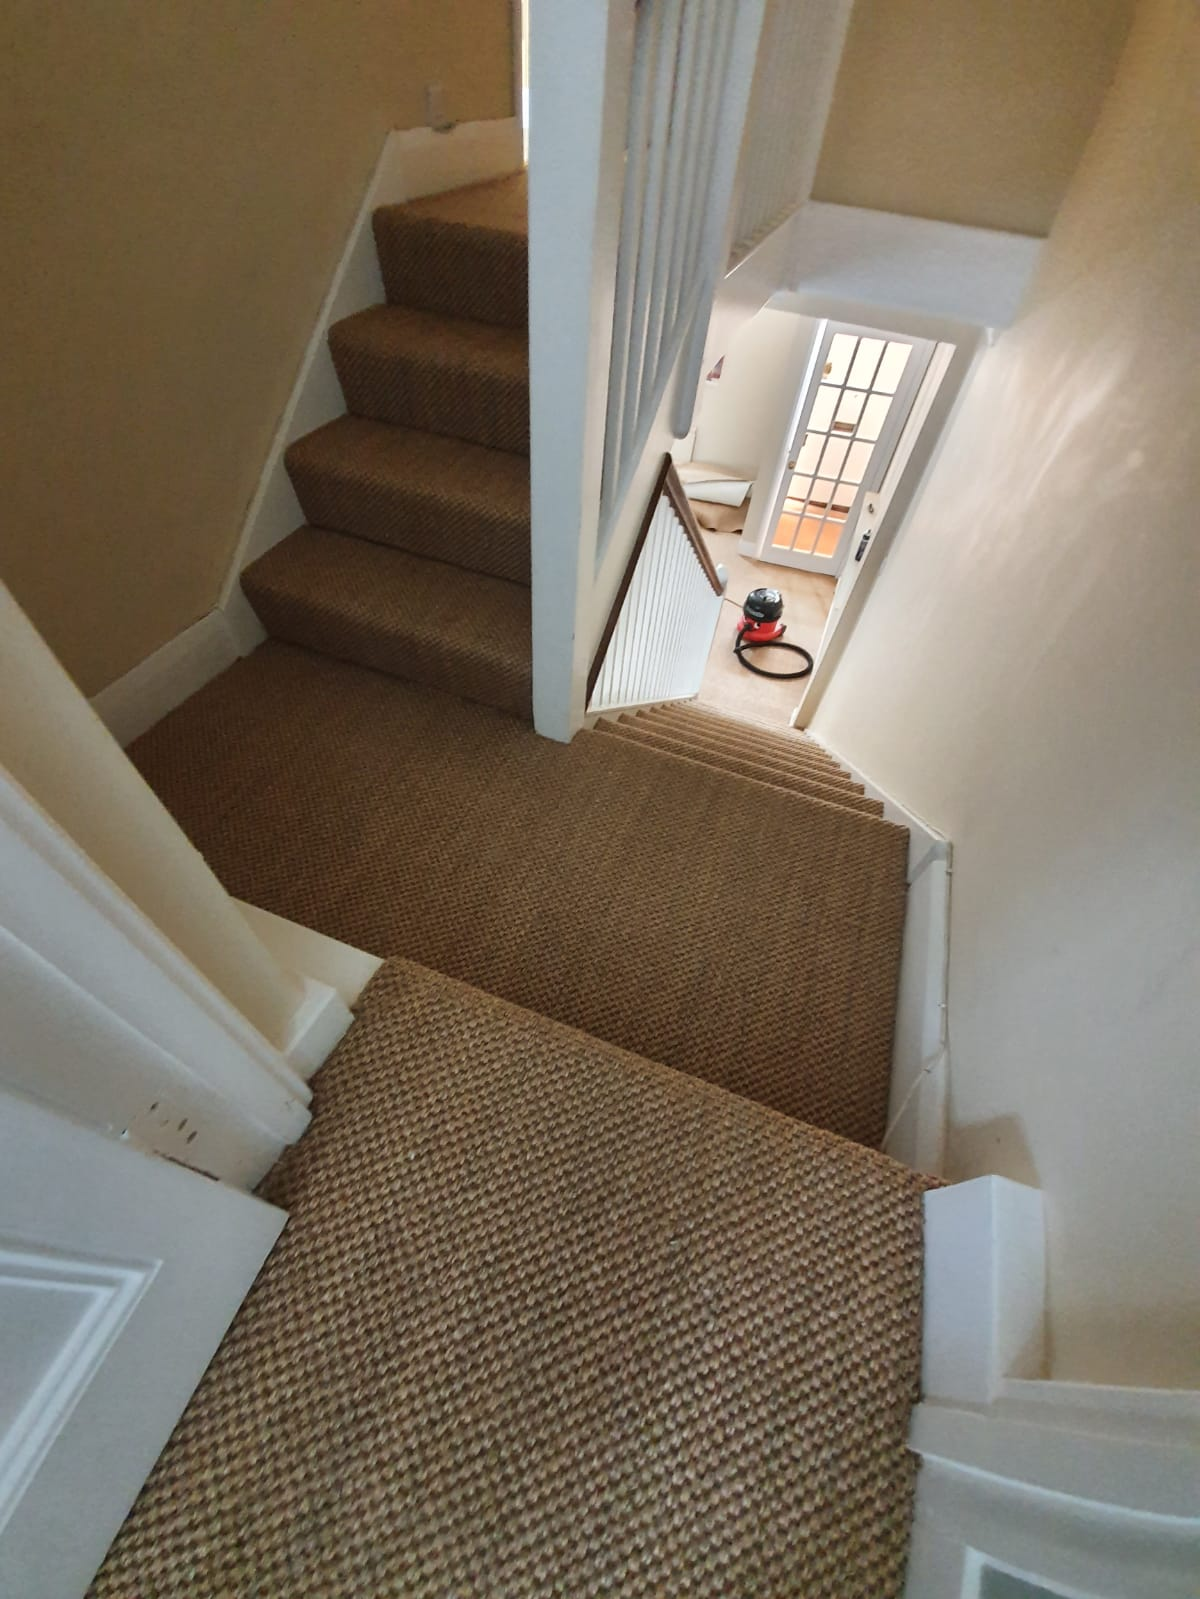 Kersaint Cobb Sisal Tigers Eye Flint Carpet In Shepherds Bush 4